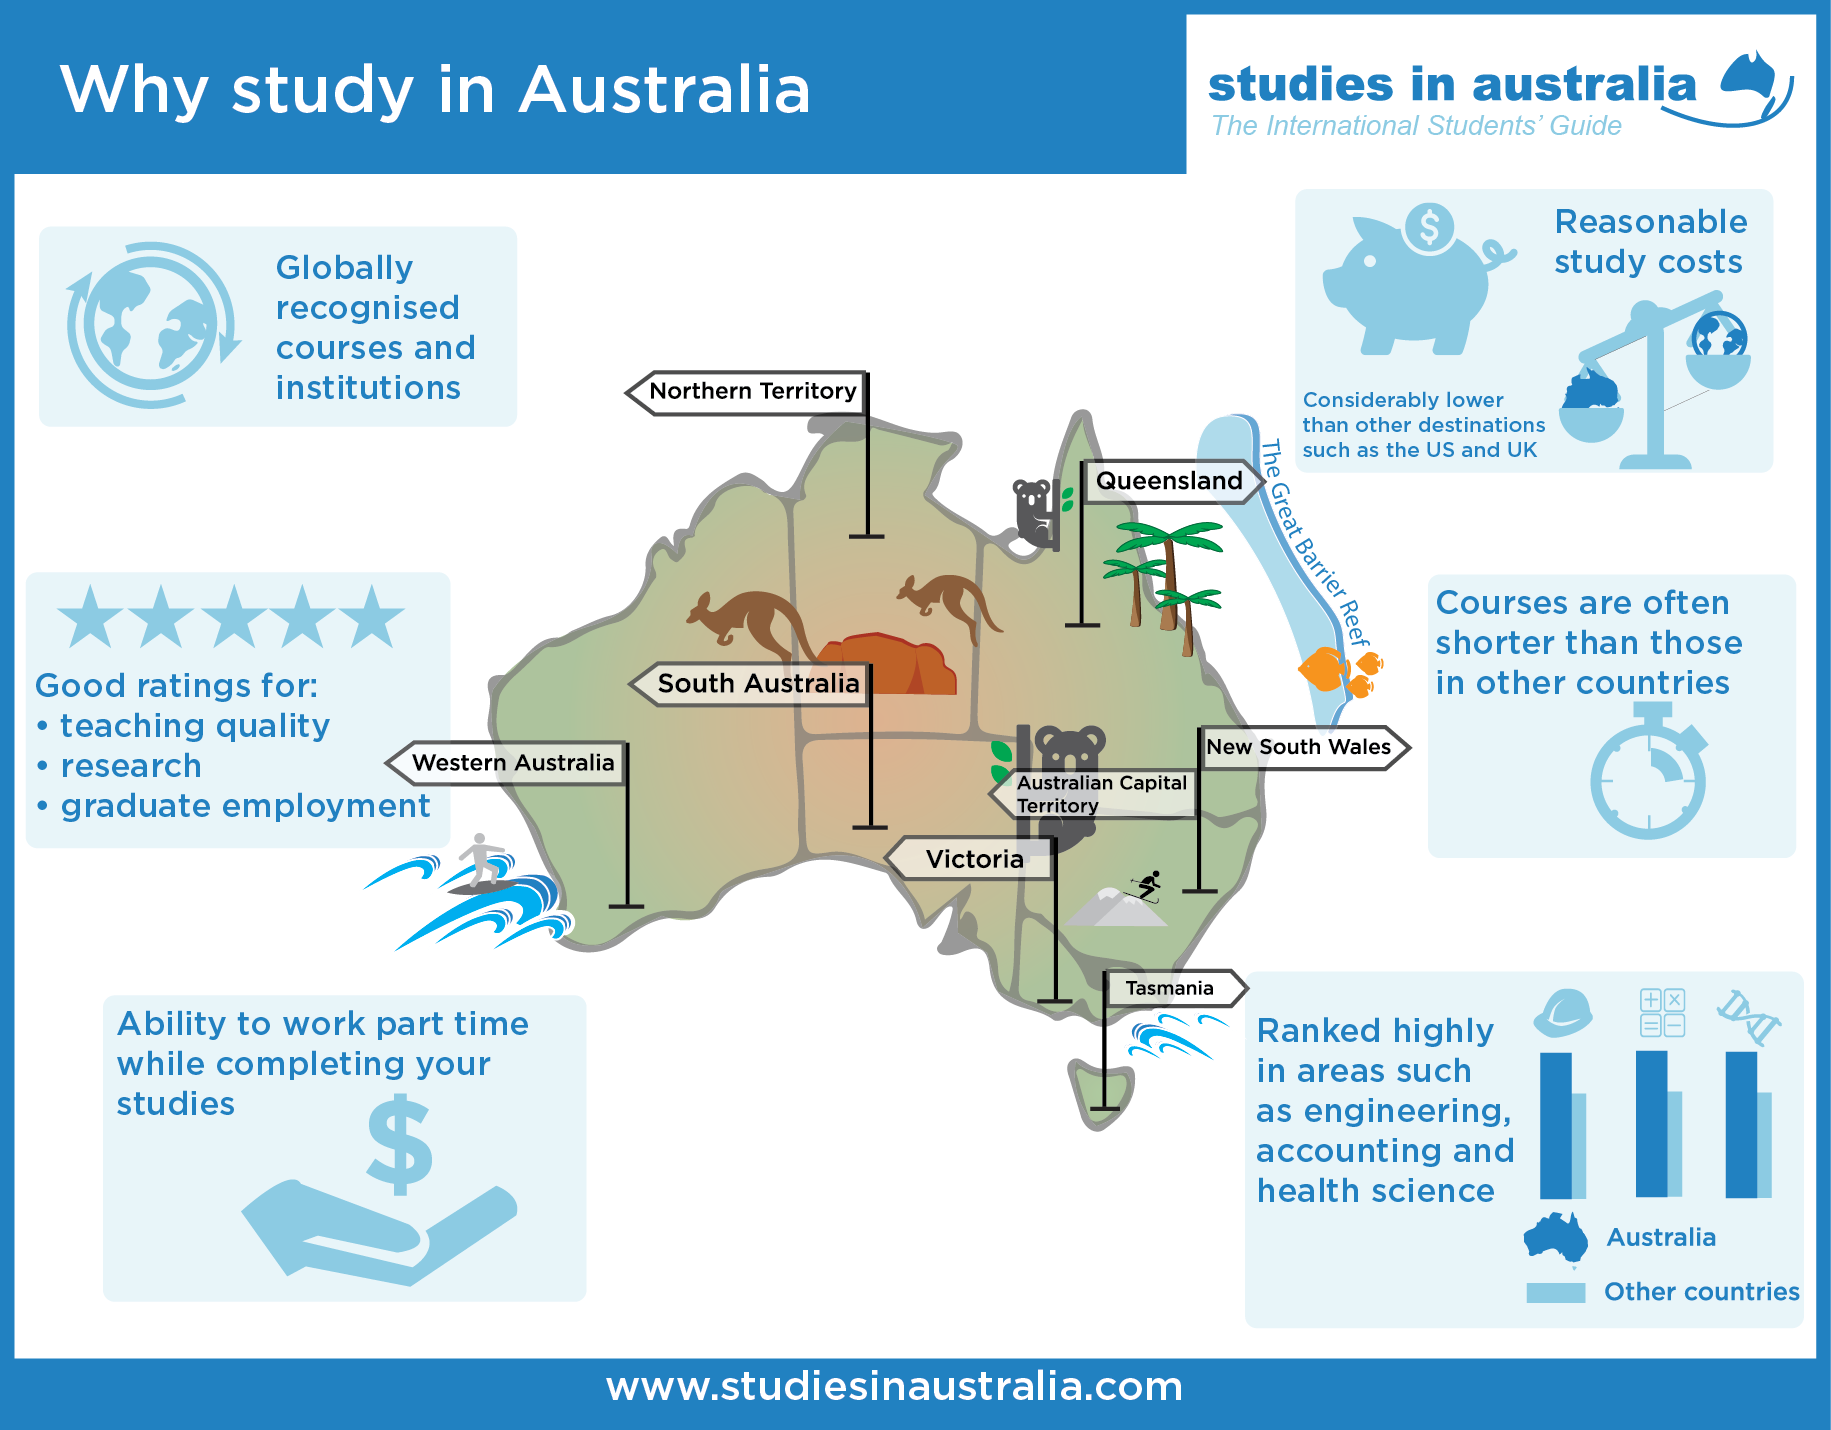 7 Reasons to Study in Australia, UK or USA Despite Cost ...